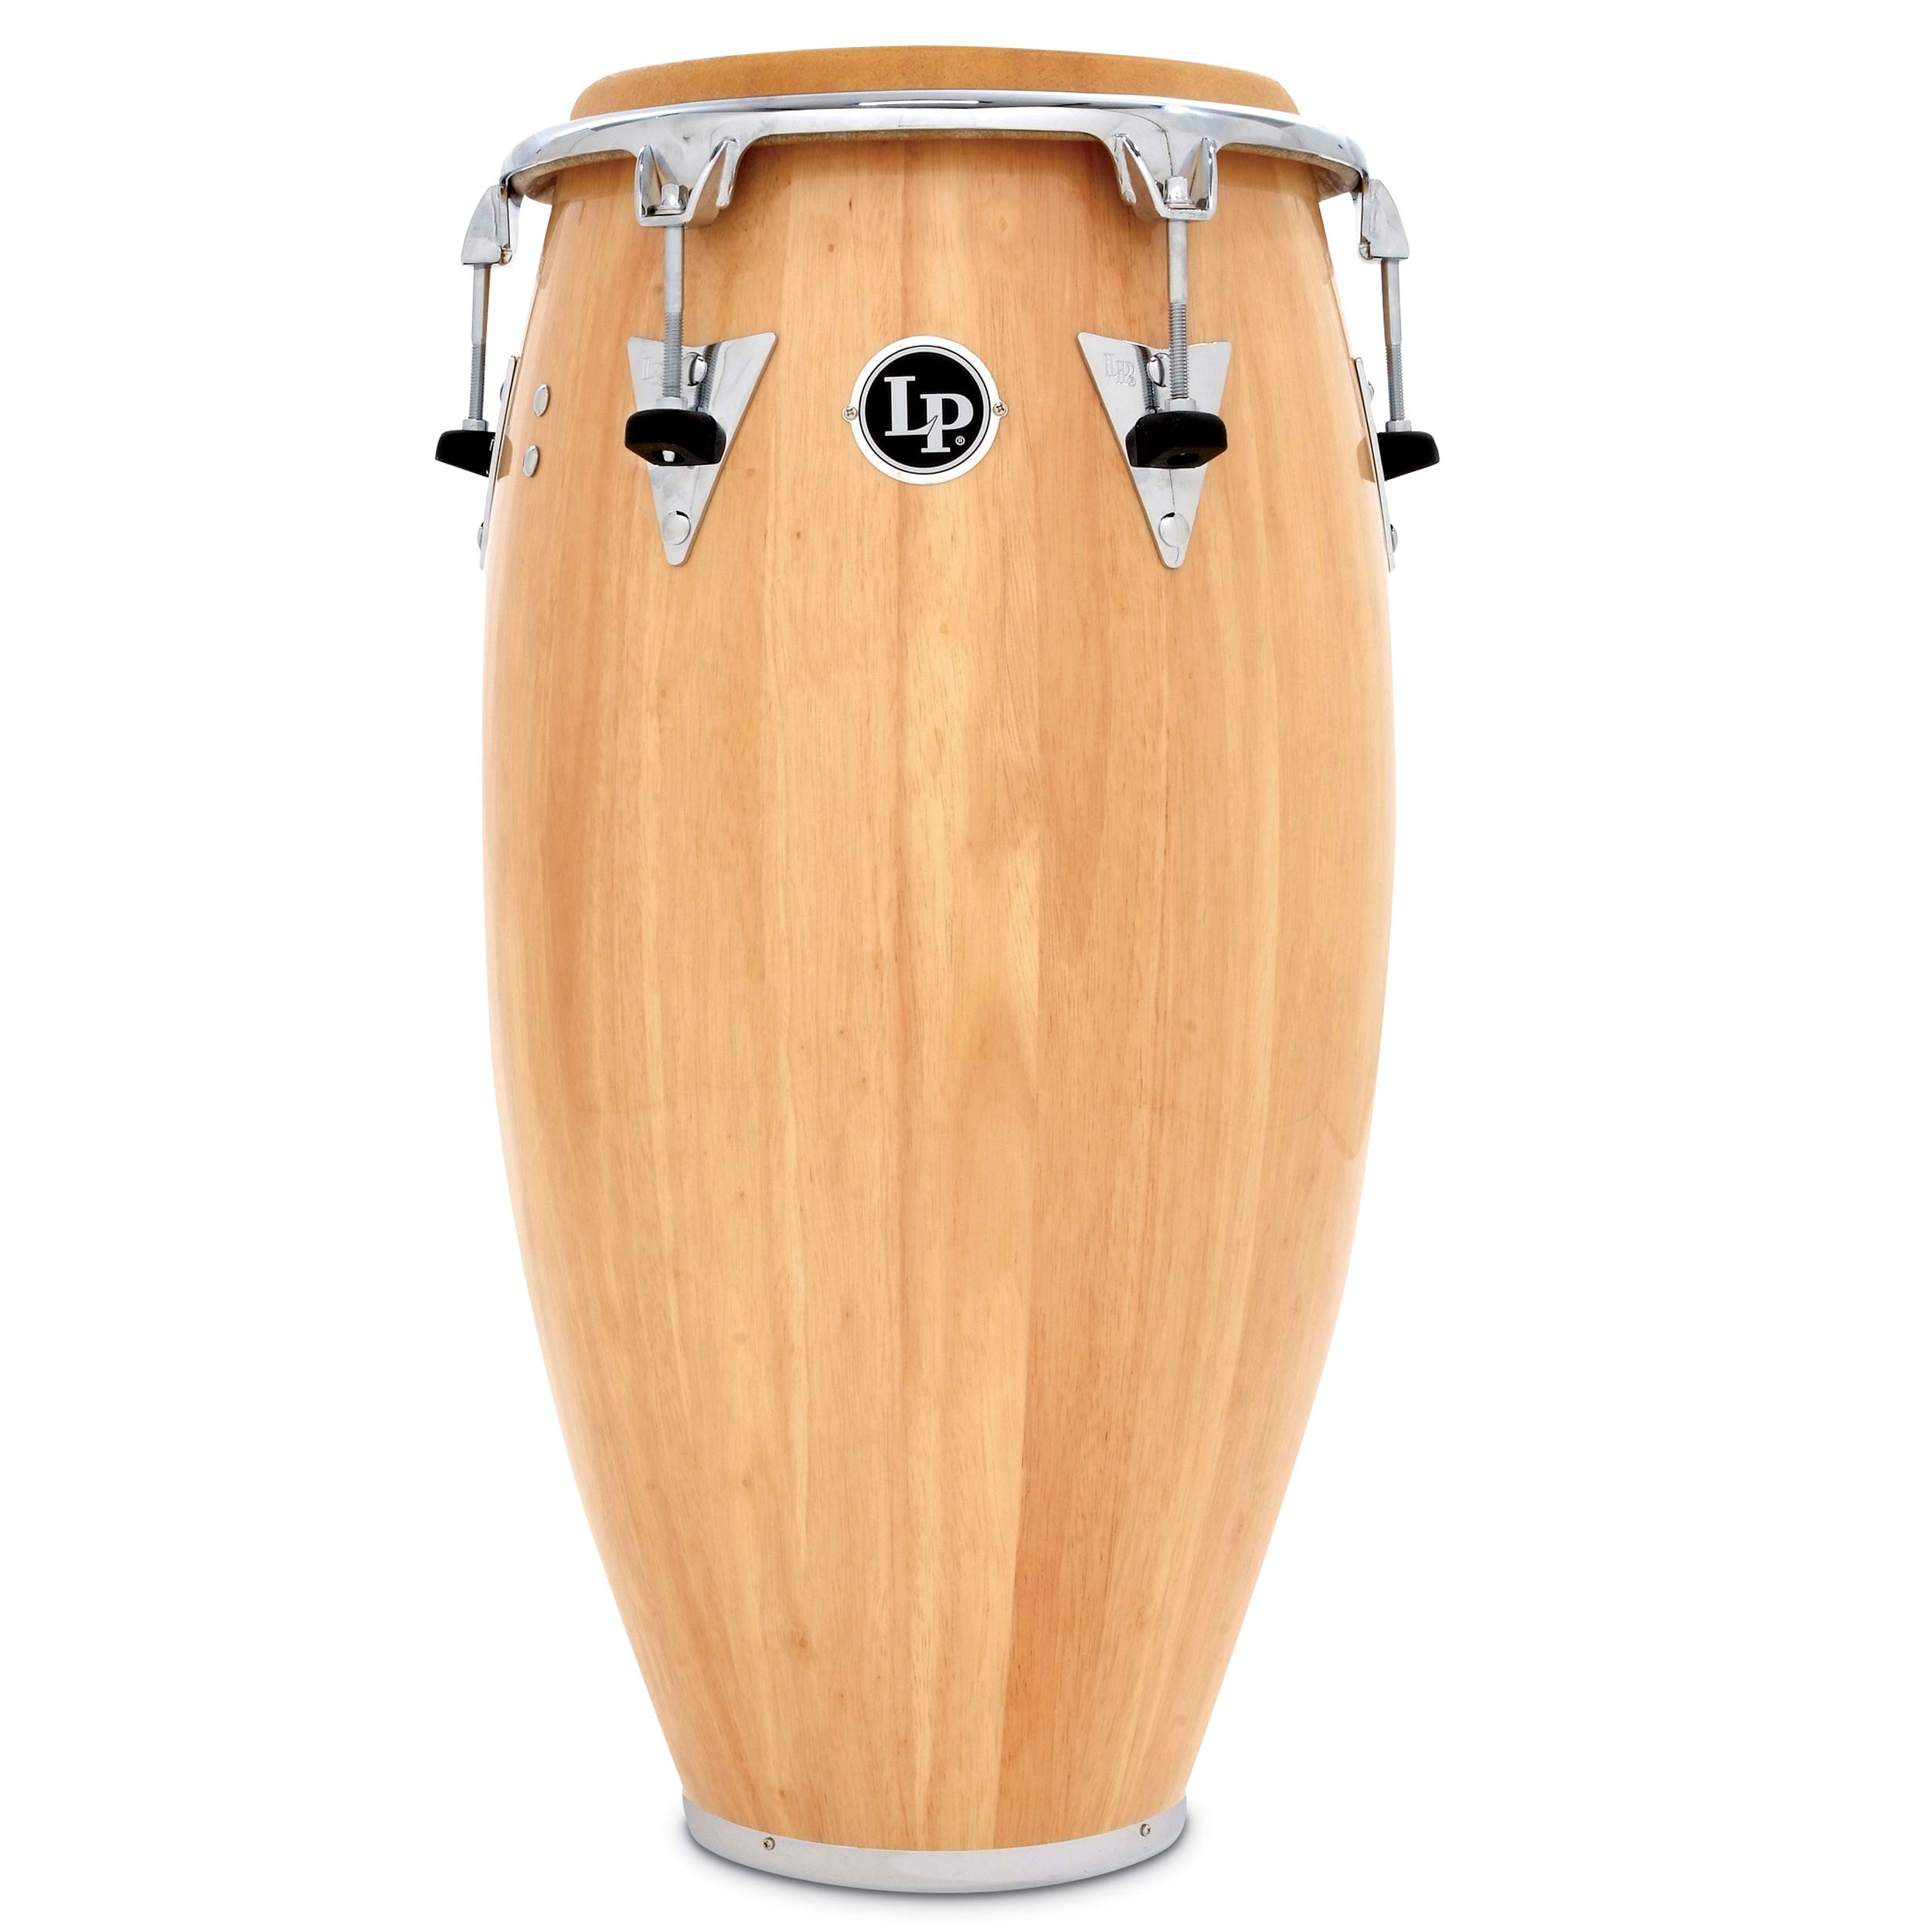 LP Cls Top Tun 12 1/2Tum Natwd by Latin Percussion (Image #1)